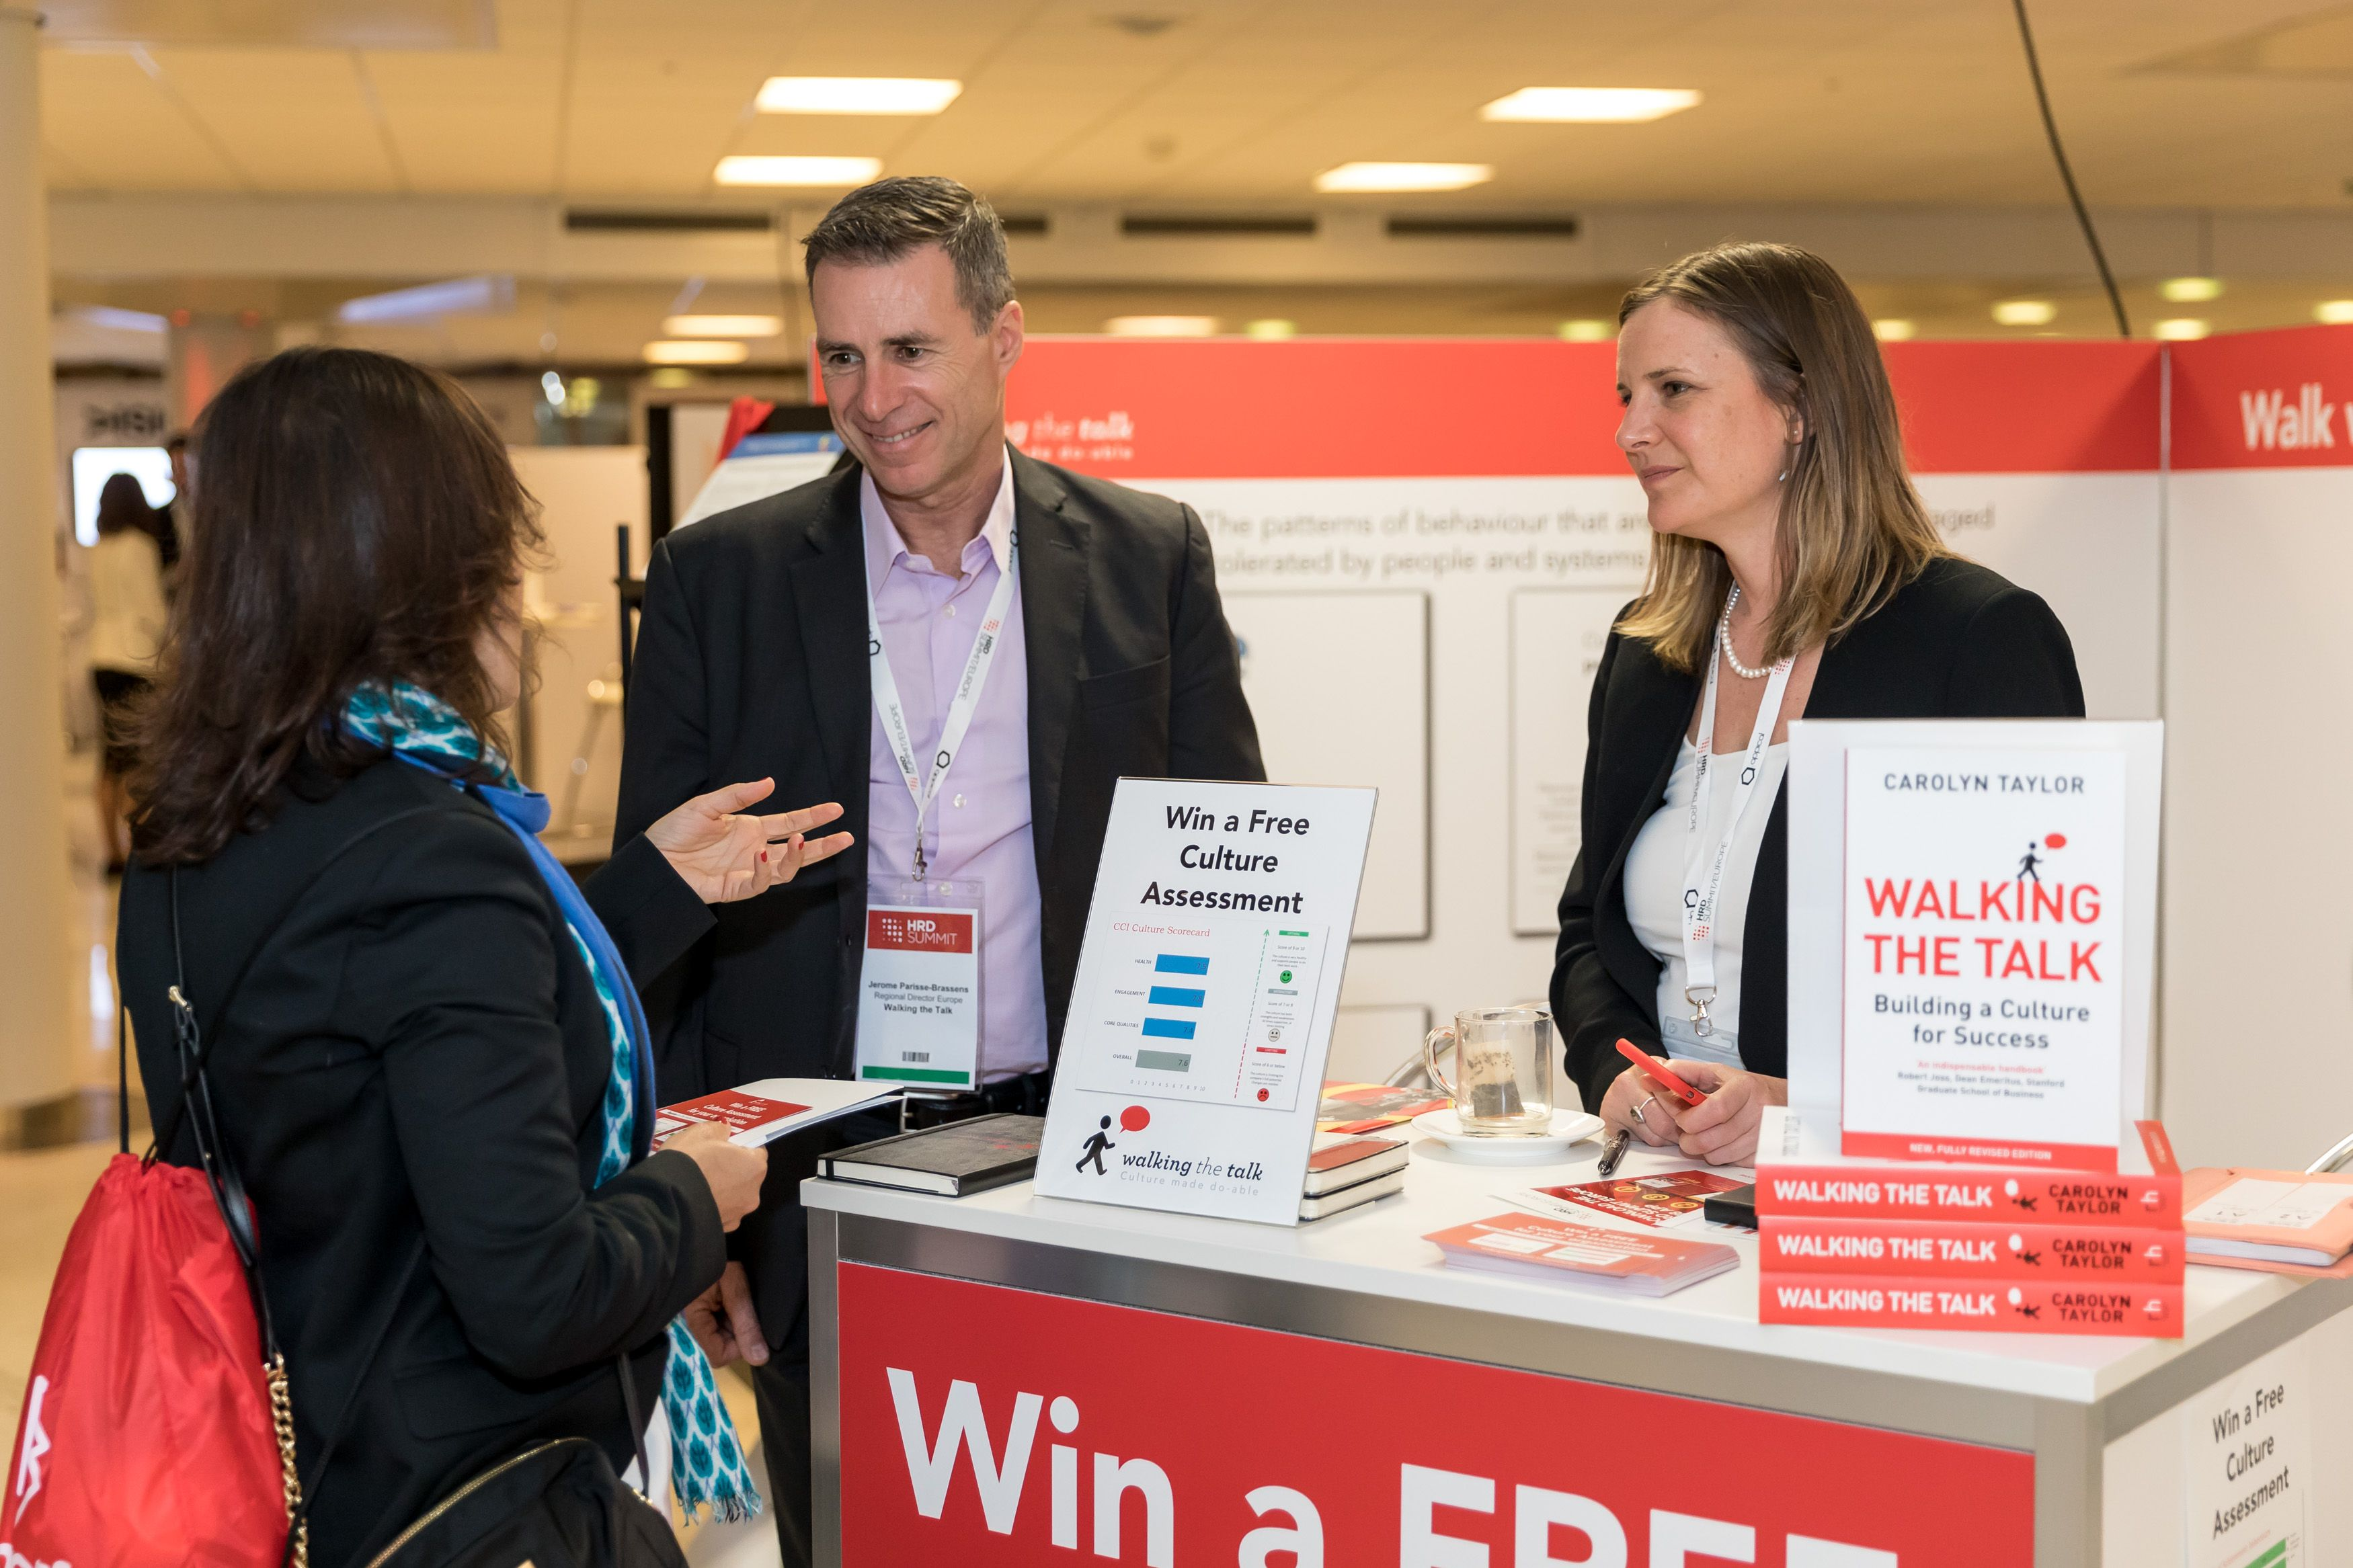 HRD-Summit-Europe-2018-Small-230 Walking the Talk Executive Director Jerome Parisse-Brassens and Senior Consultant Louise Taylor in discussion with a HRD Summit delegate.